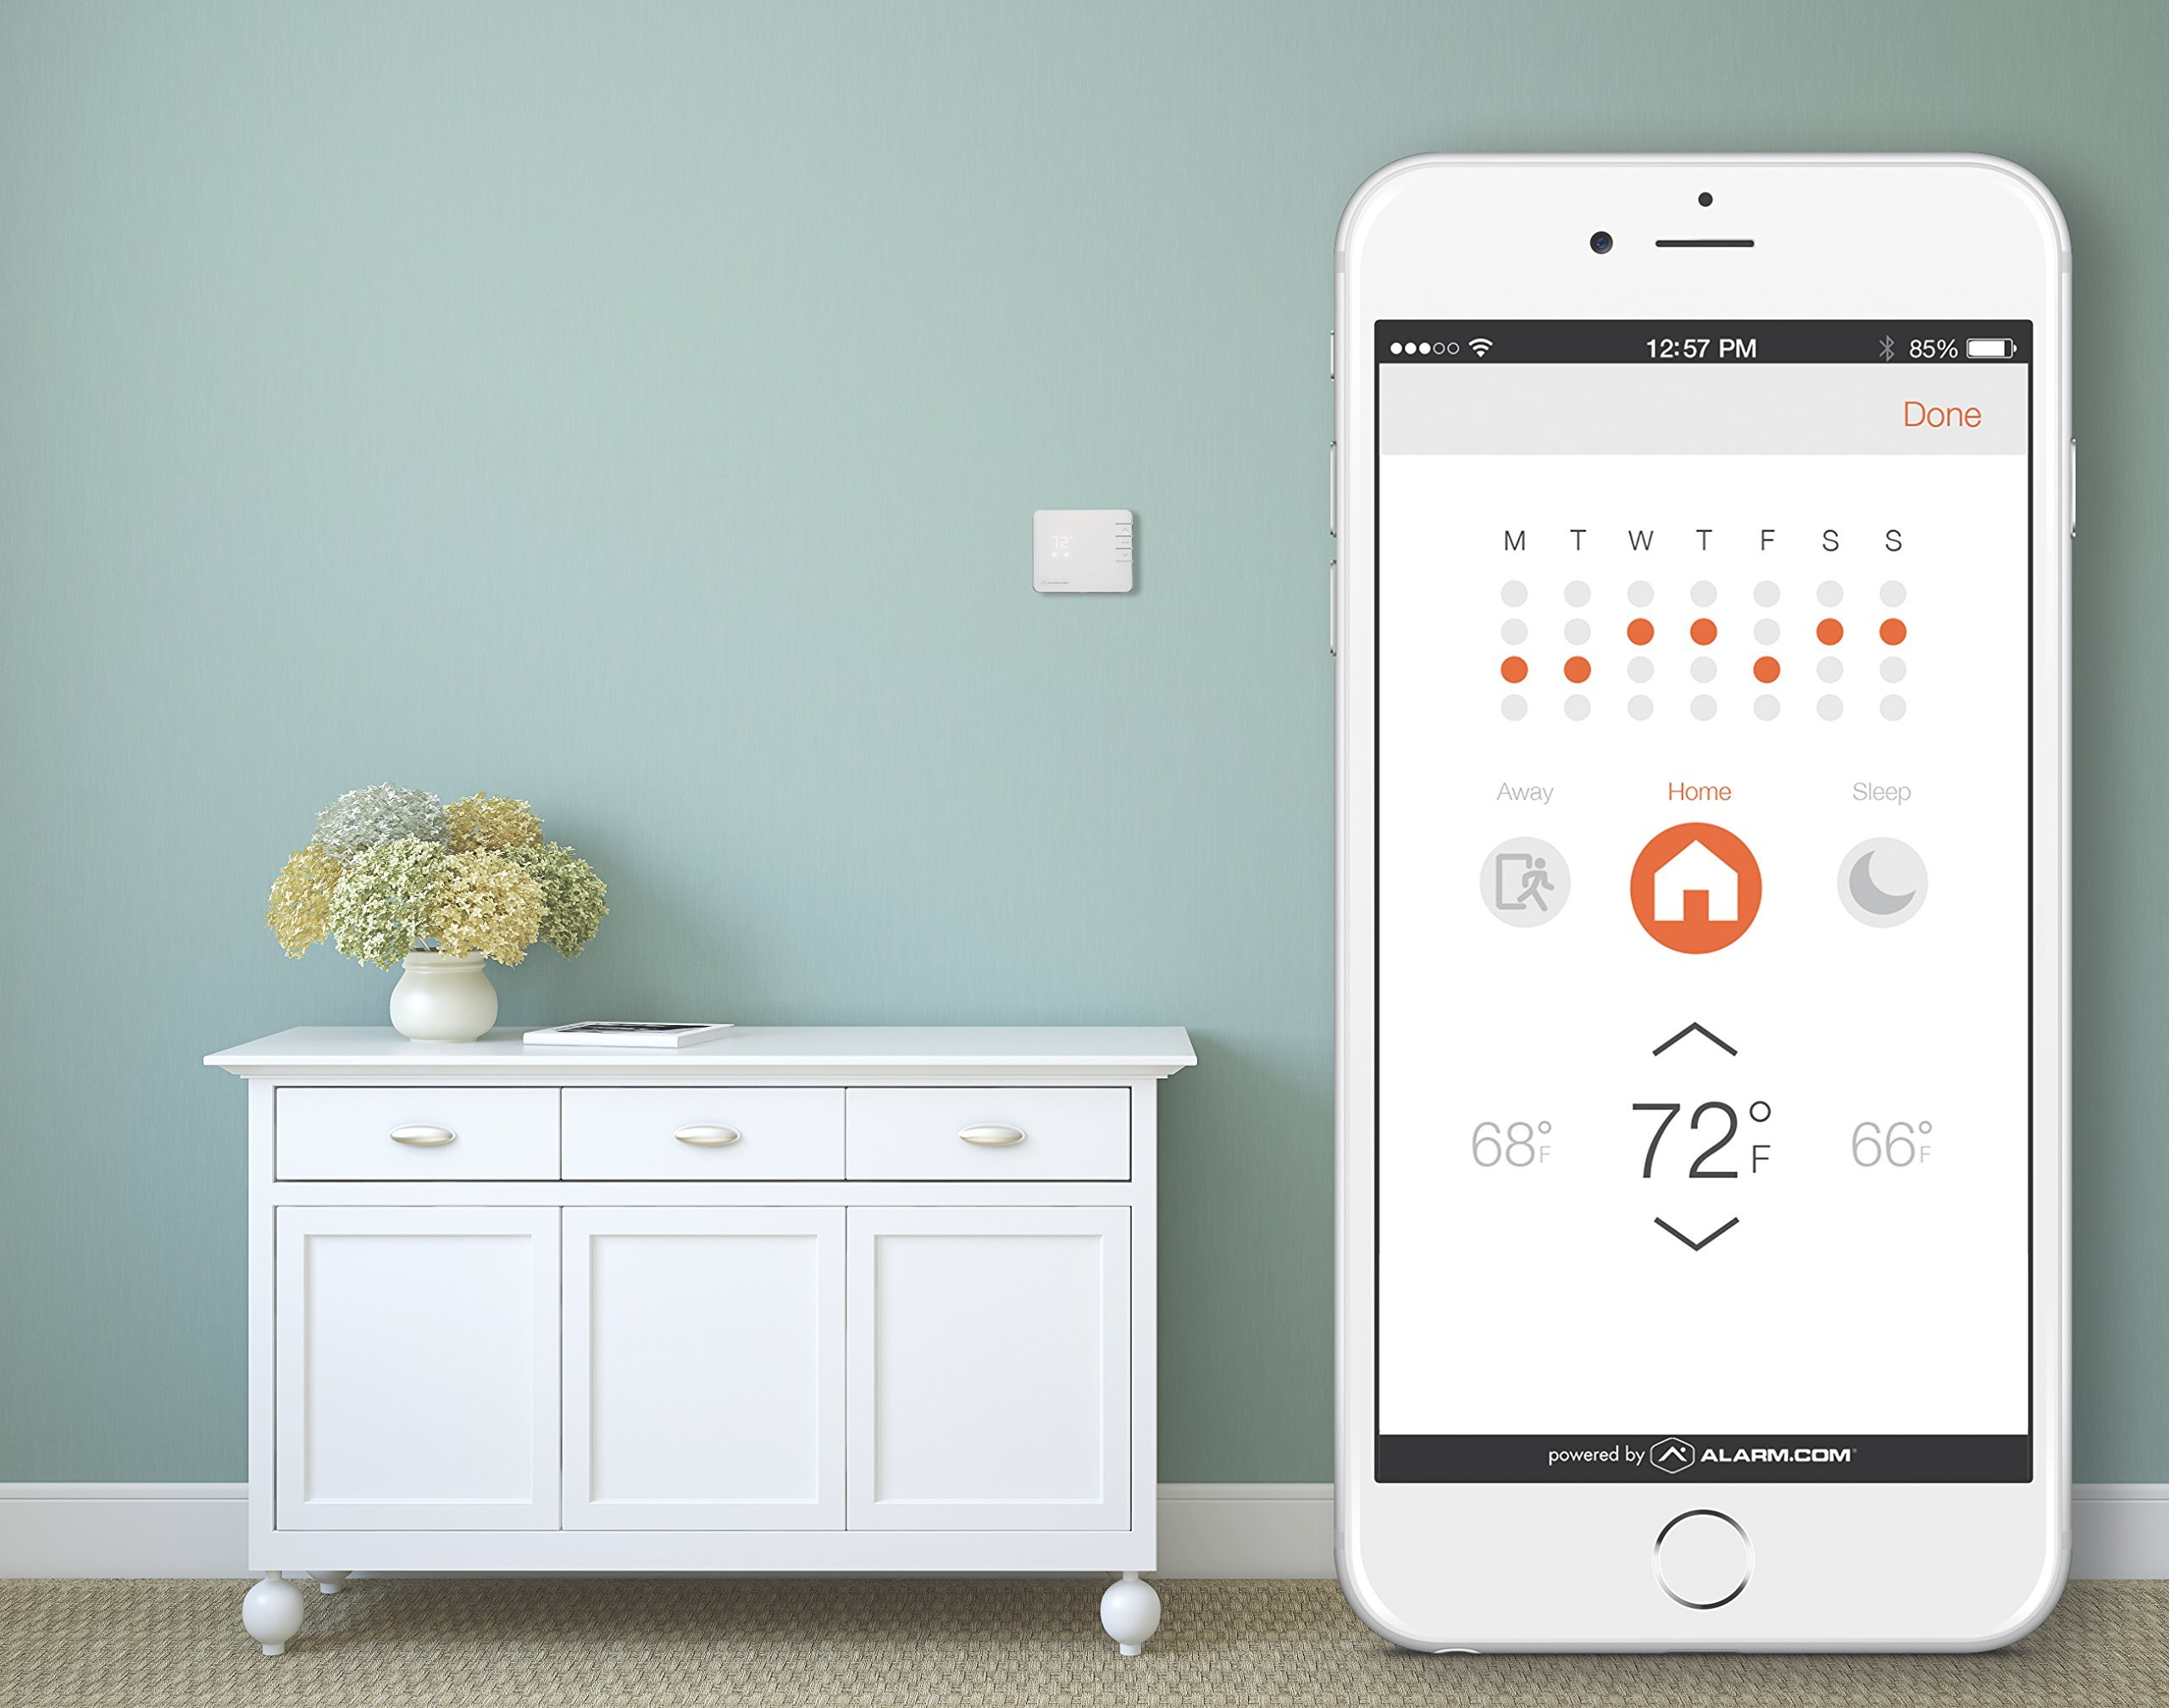 Alarm.com Smart Thermostat by Alarm.com